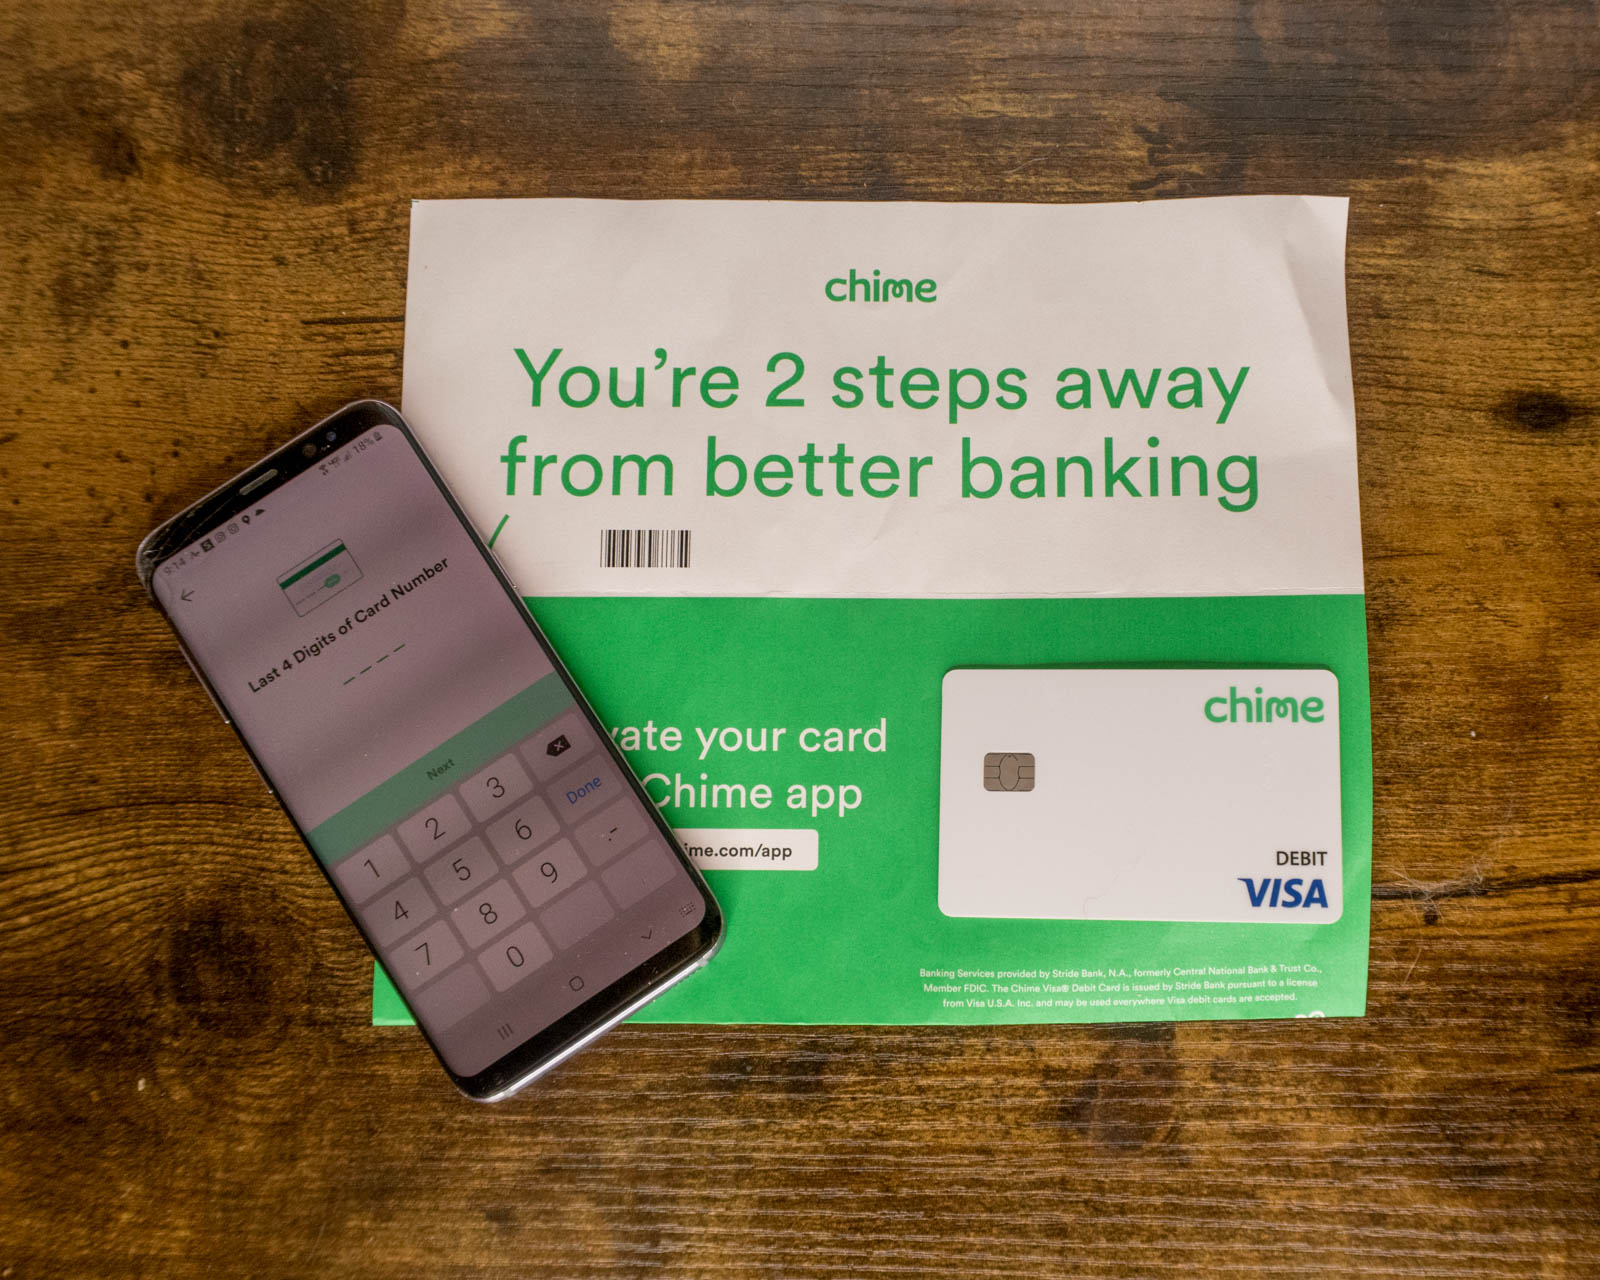 Chime is a great online banking service.